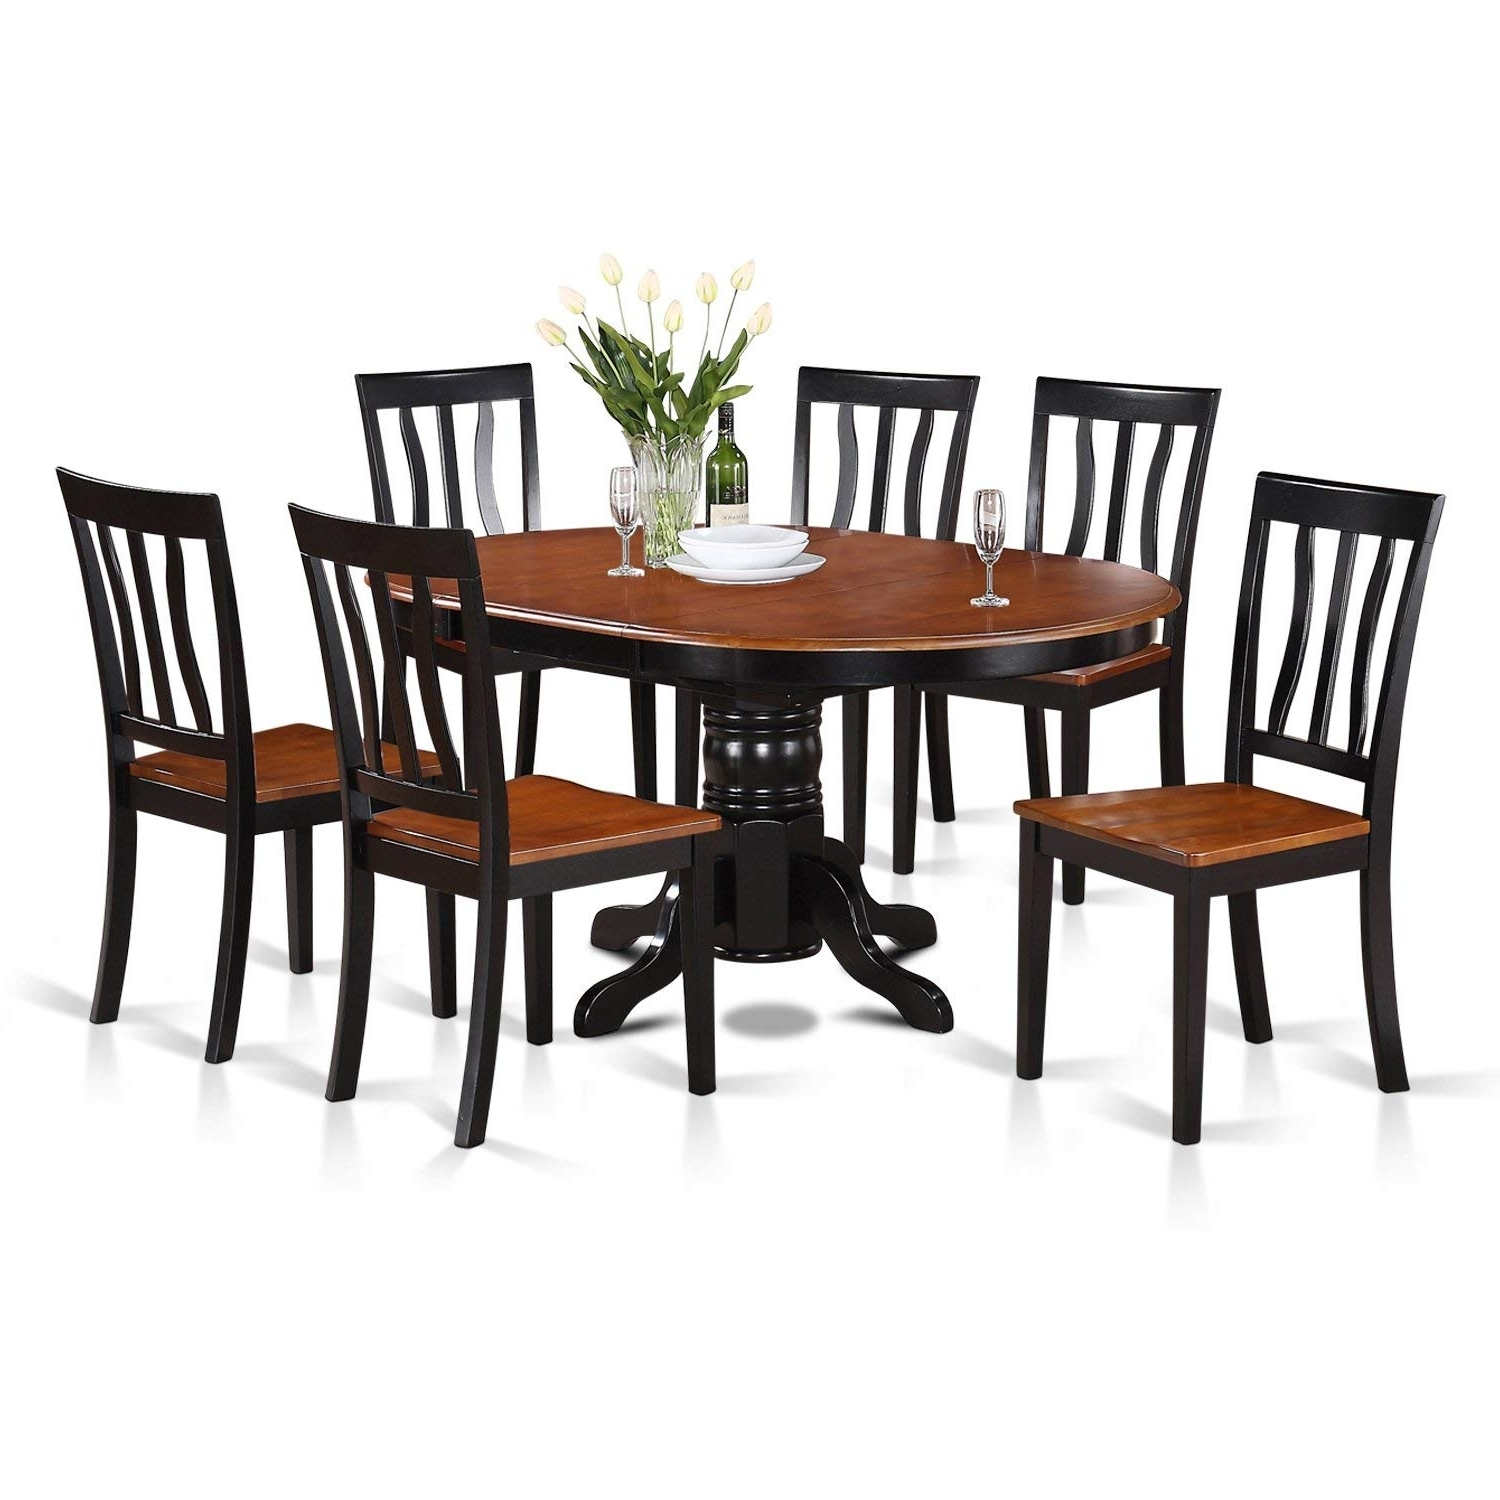 Amazon: East West Furniture Avat7 Blk W 7 Piece Dining Table Set Throughout Most Popular Jaxon Grey 7 Piece Rectangle Extension Dining Sets With Wood Chairs (View 6 of 25)